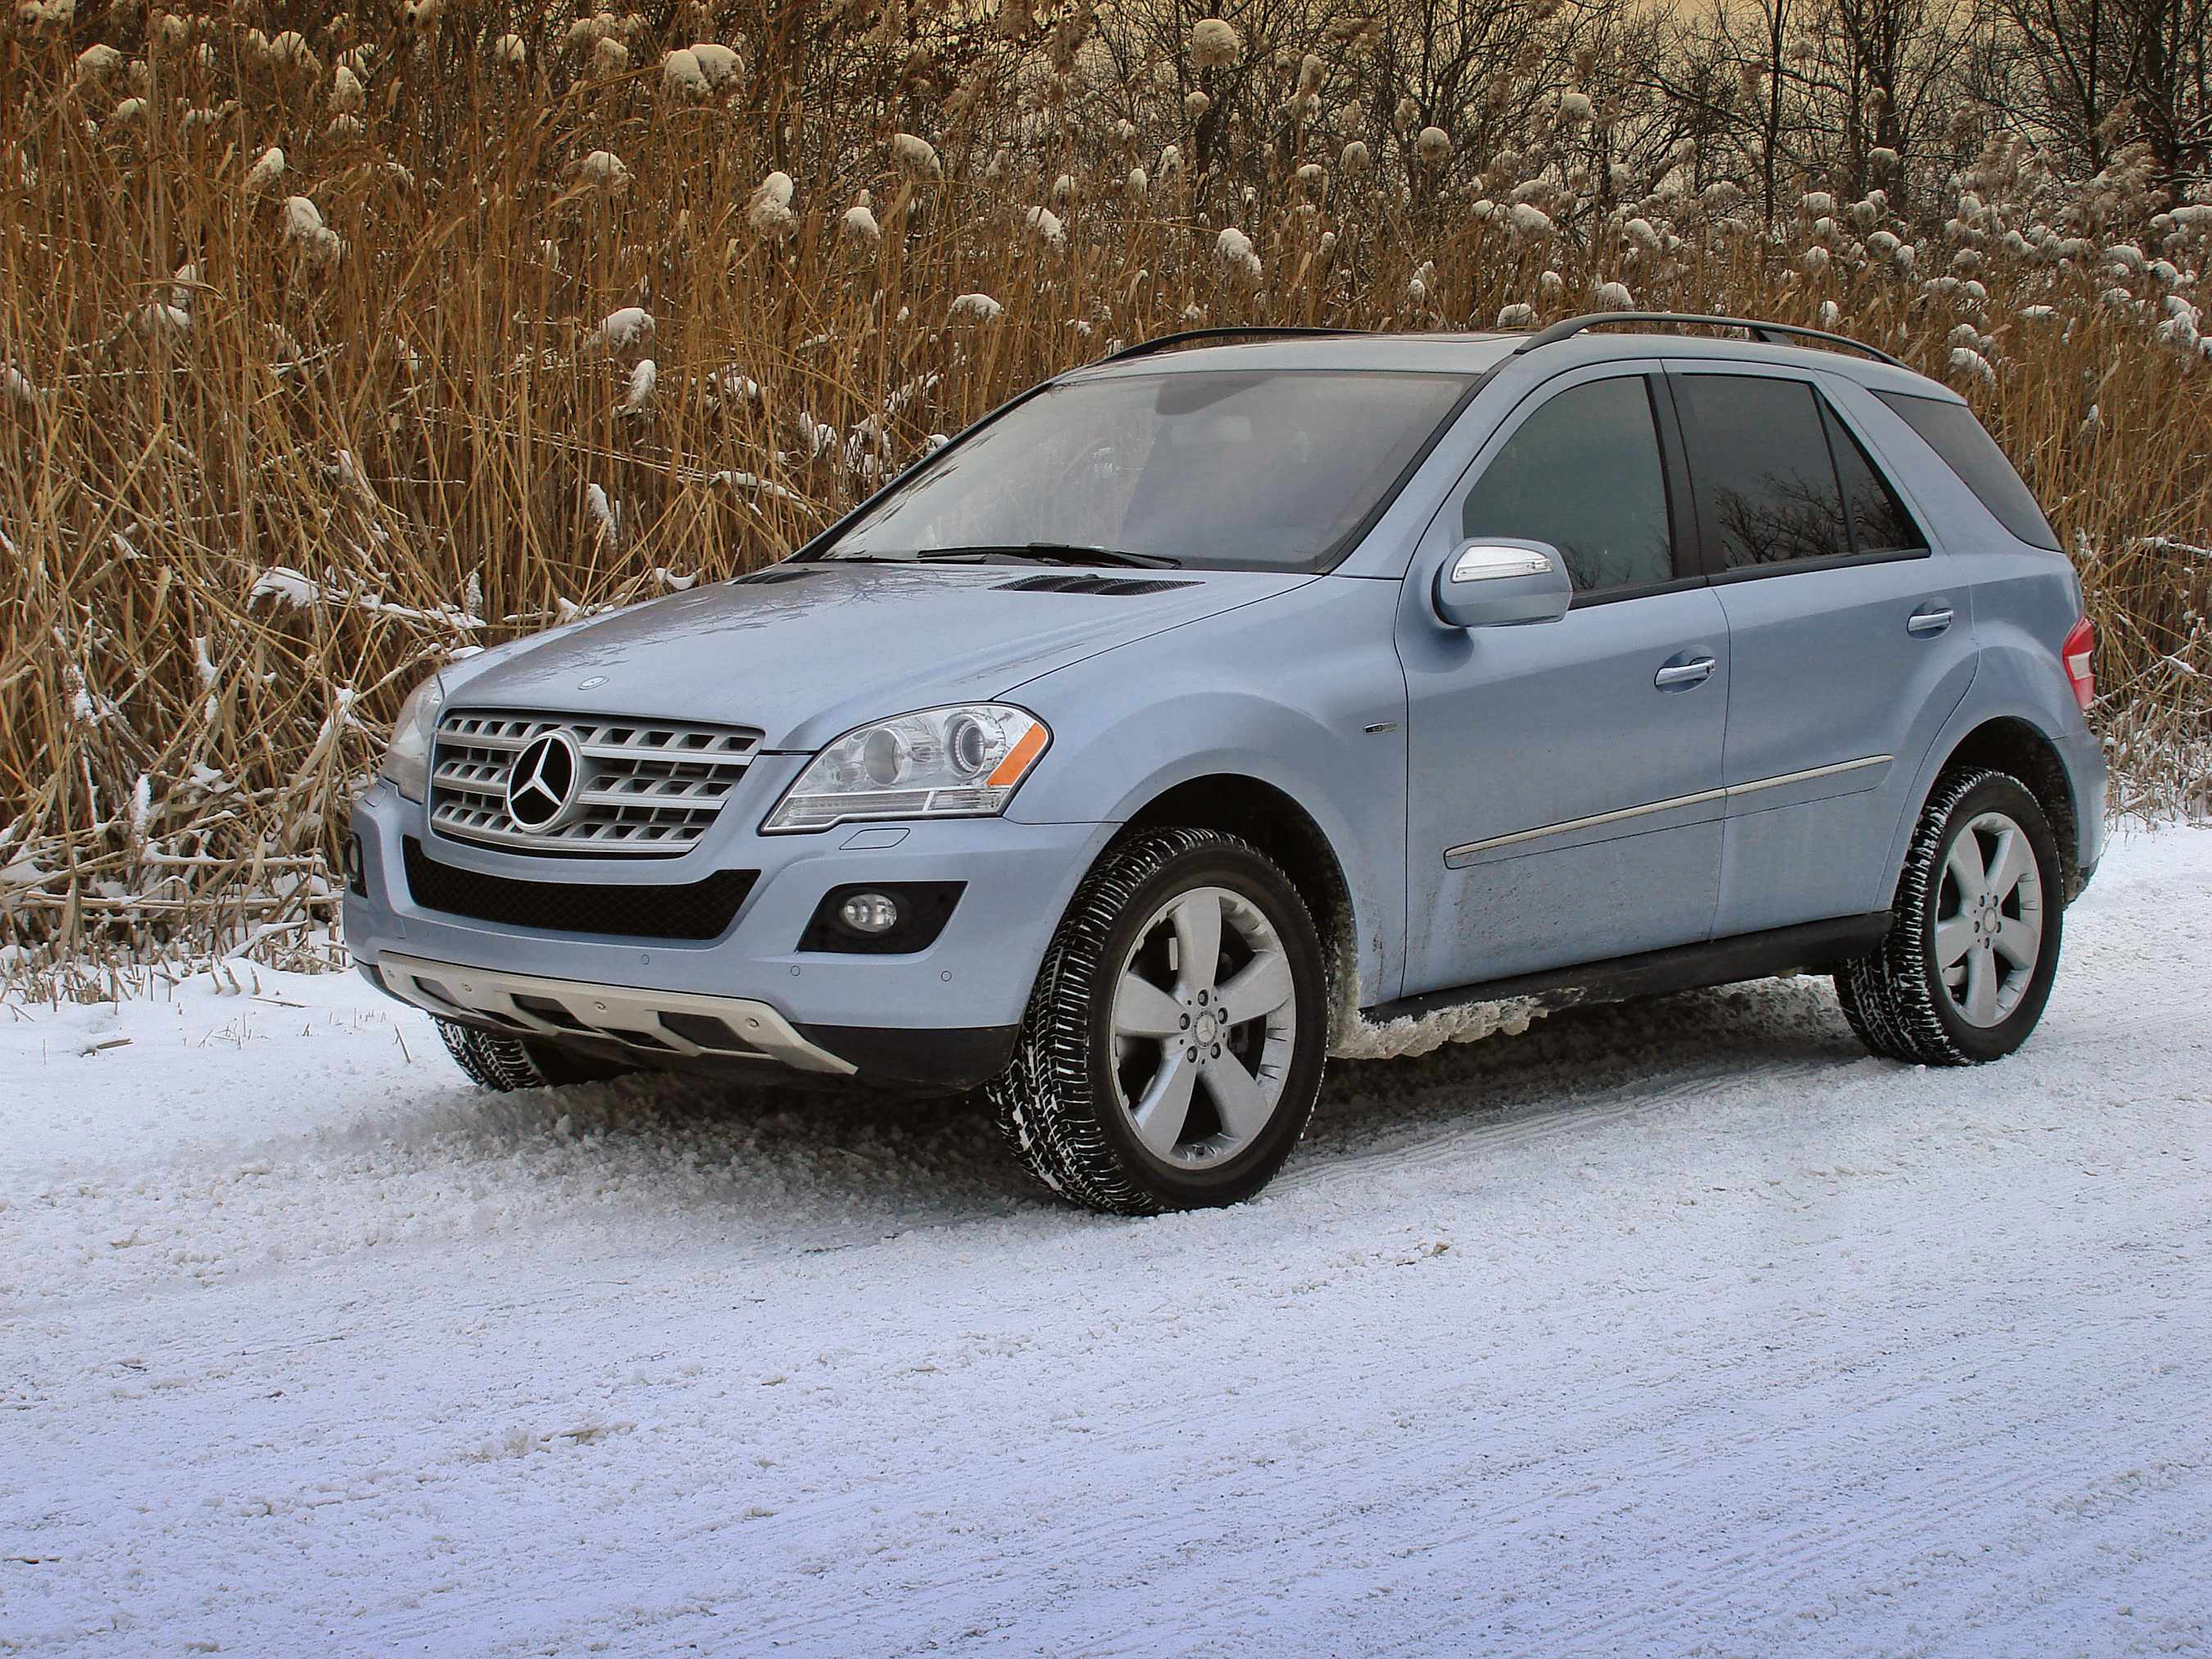 Holiday On Ice: Two Weeks in the 2009 Mercedes Benz ML320 BlueTEC ...